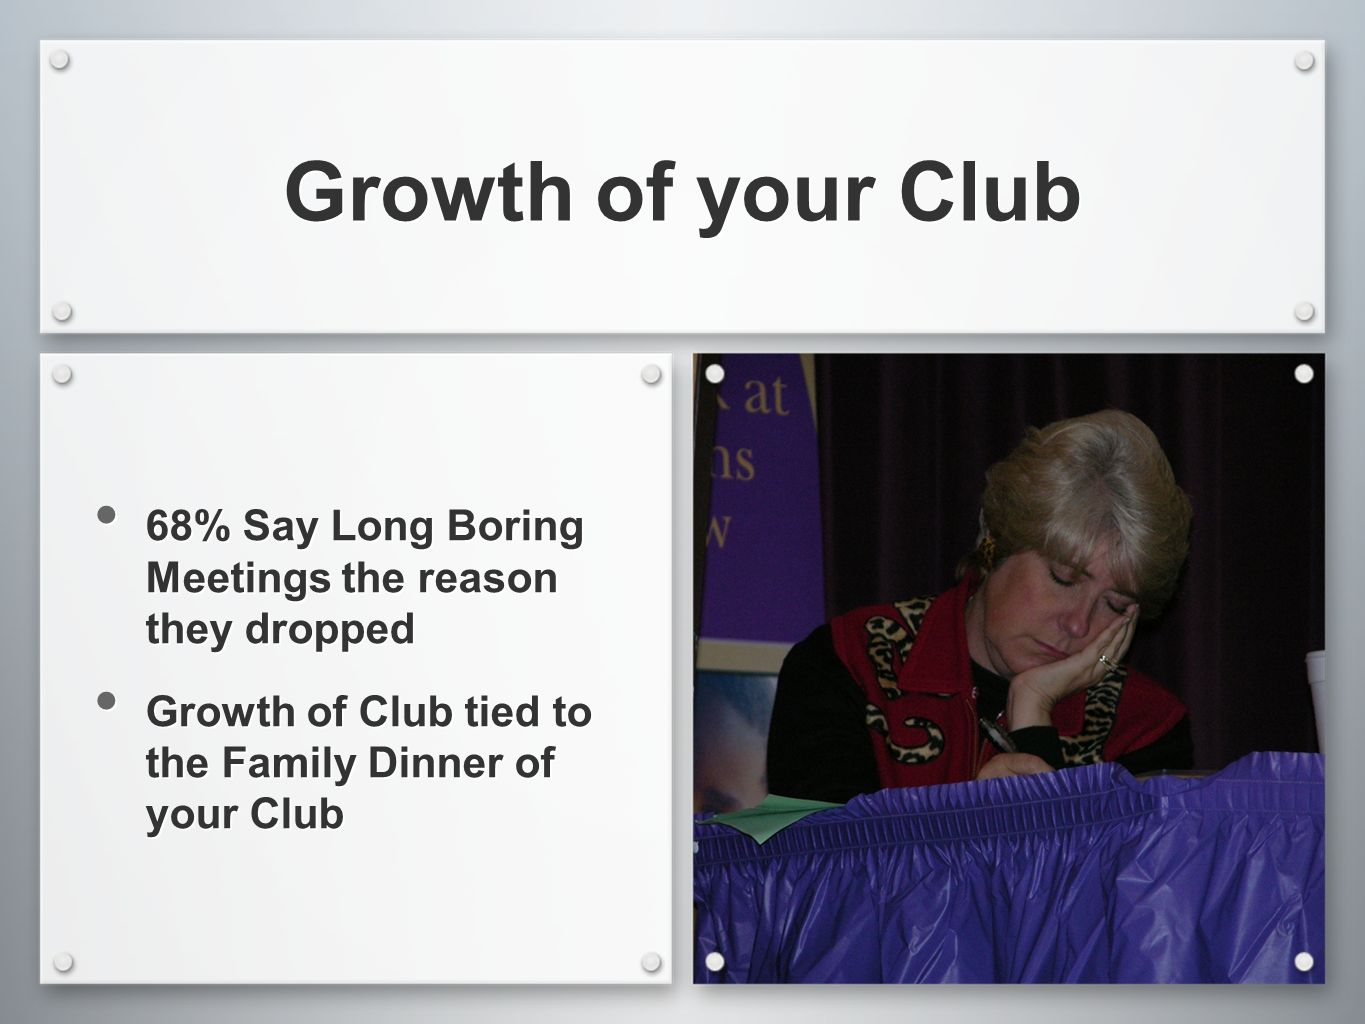 Growth of your Club 68% Say Long Boring Meetings the reason they dropped Growth of Club tied to the Family Dinner of your Club 68% Say Long Boring Meetings the reason they dropped Growth of Club tied to the Family Dinner of your Club